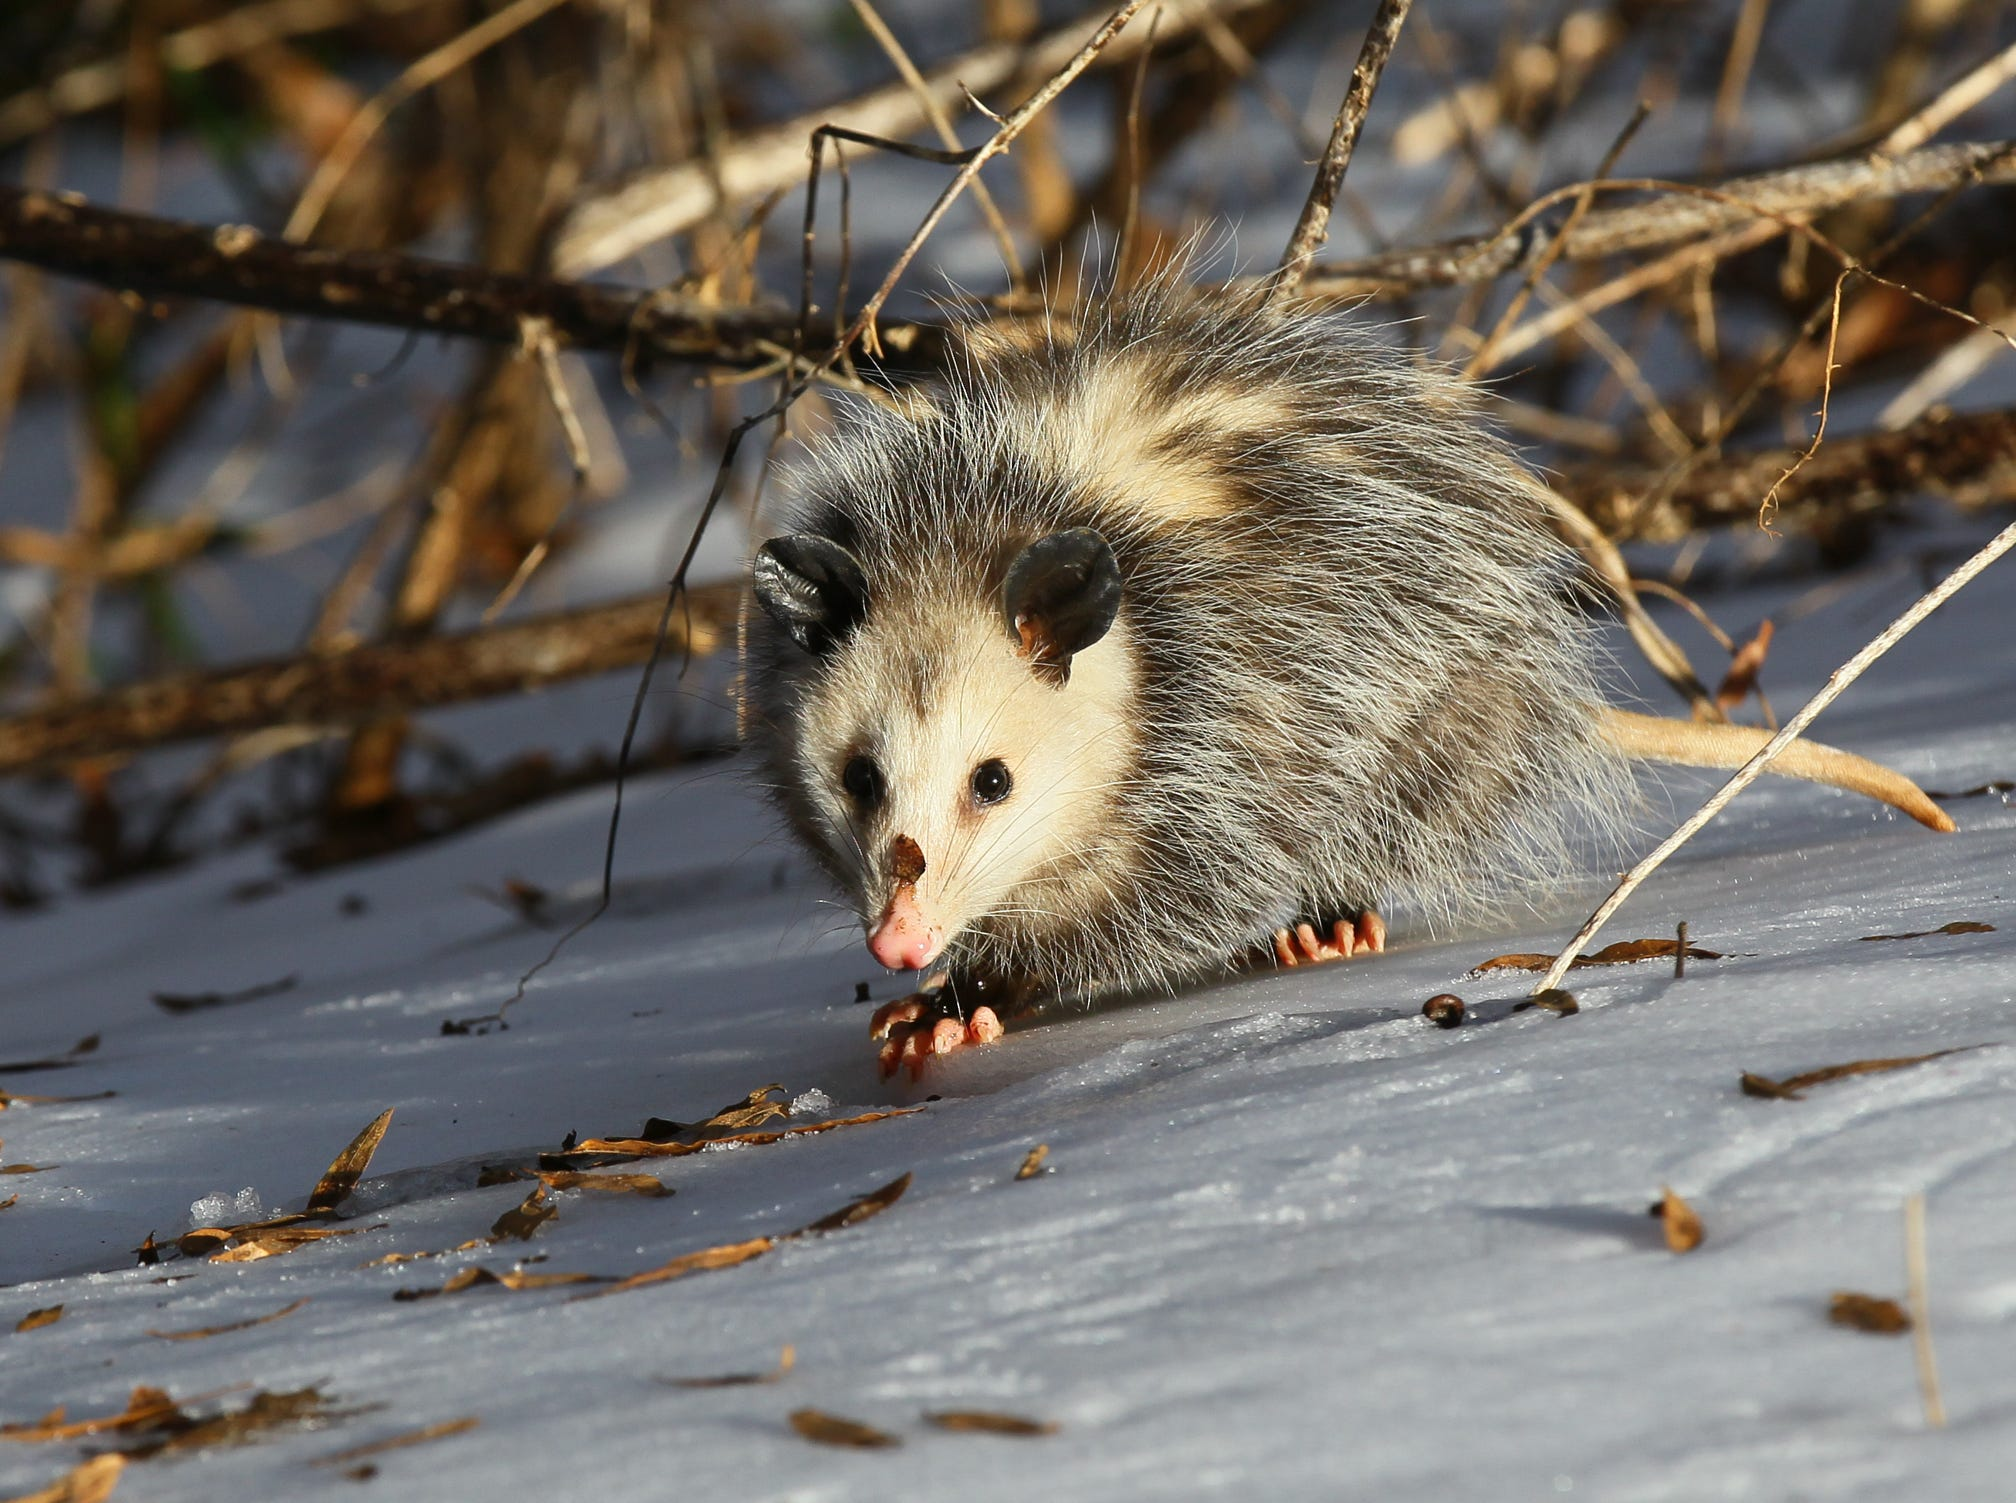 A possum walks over the iced snow at a rest stop on I-85 in Anderson County in 2014.